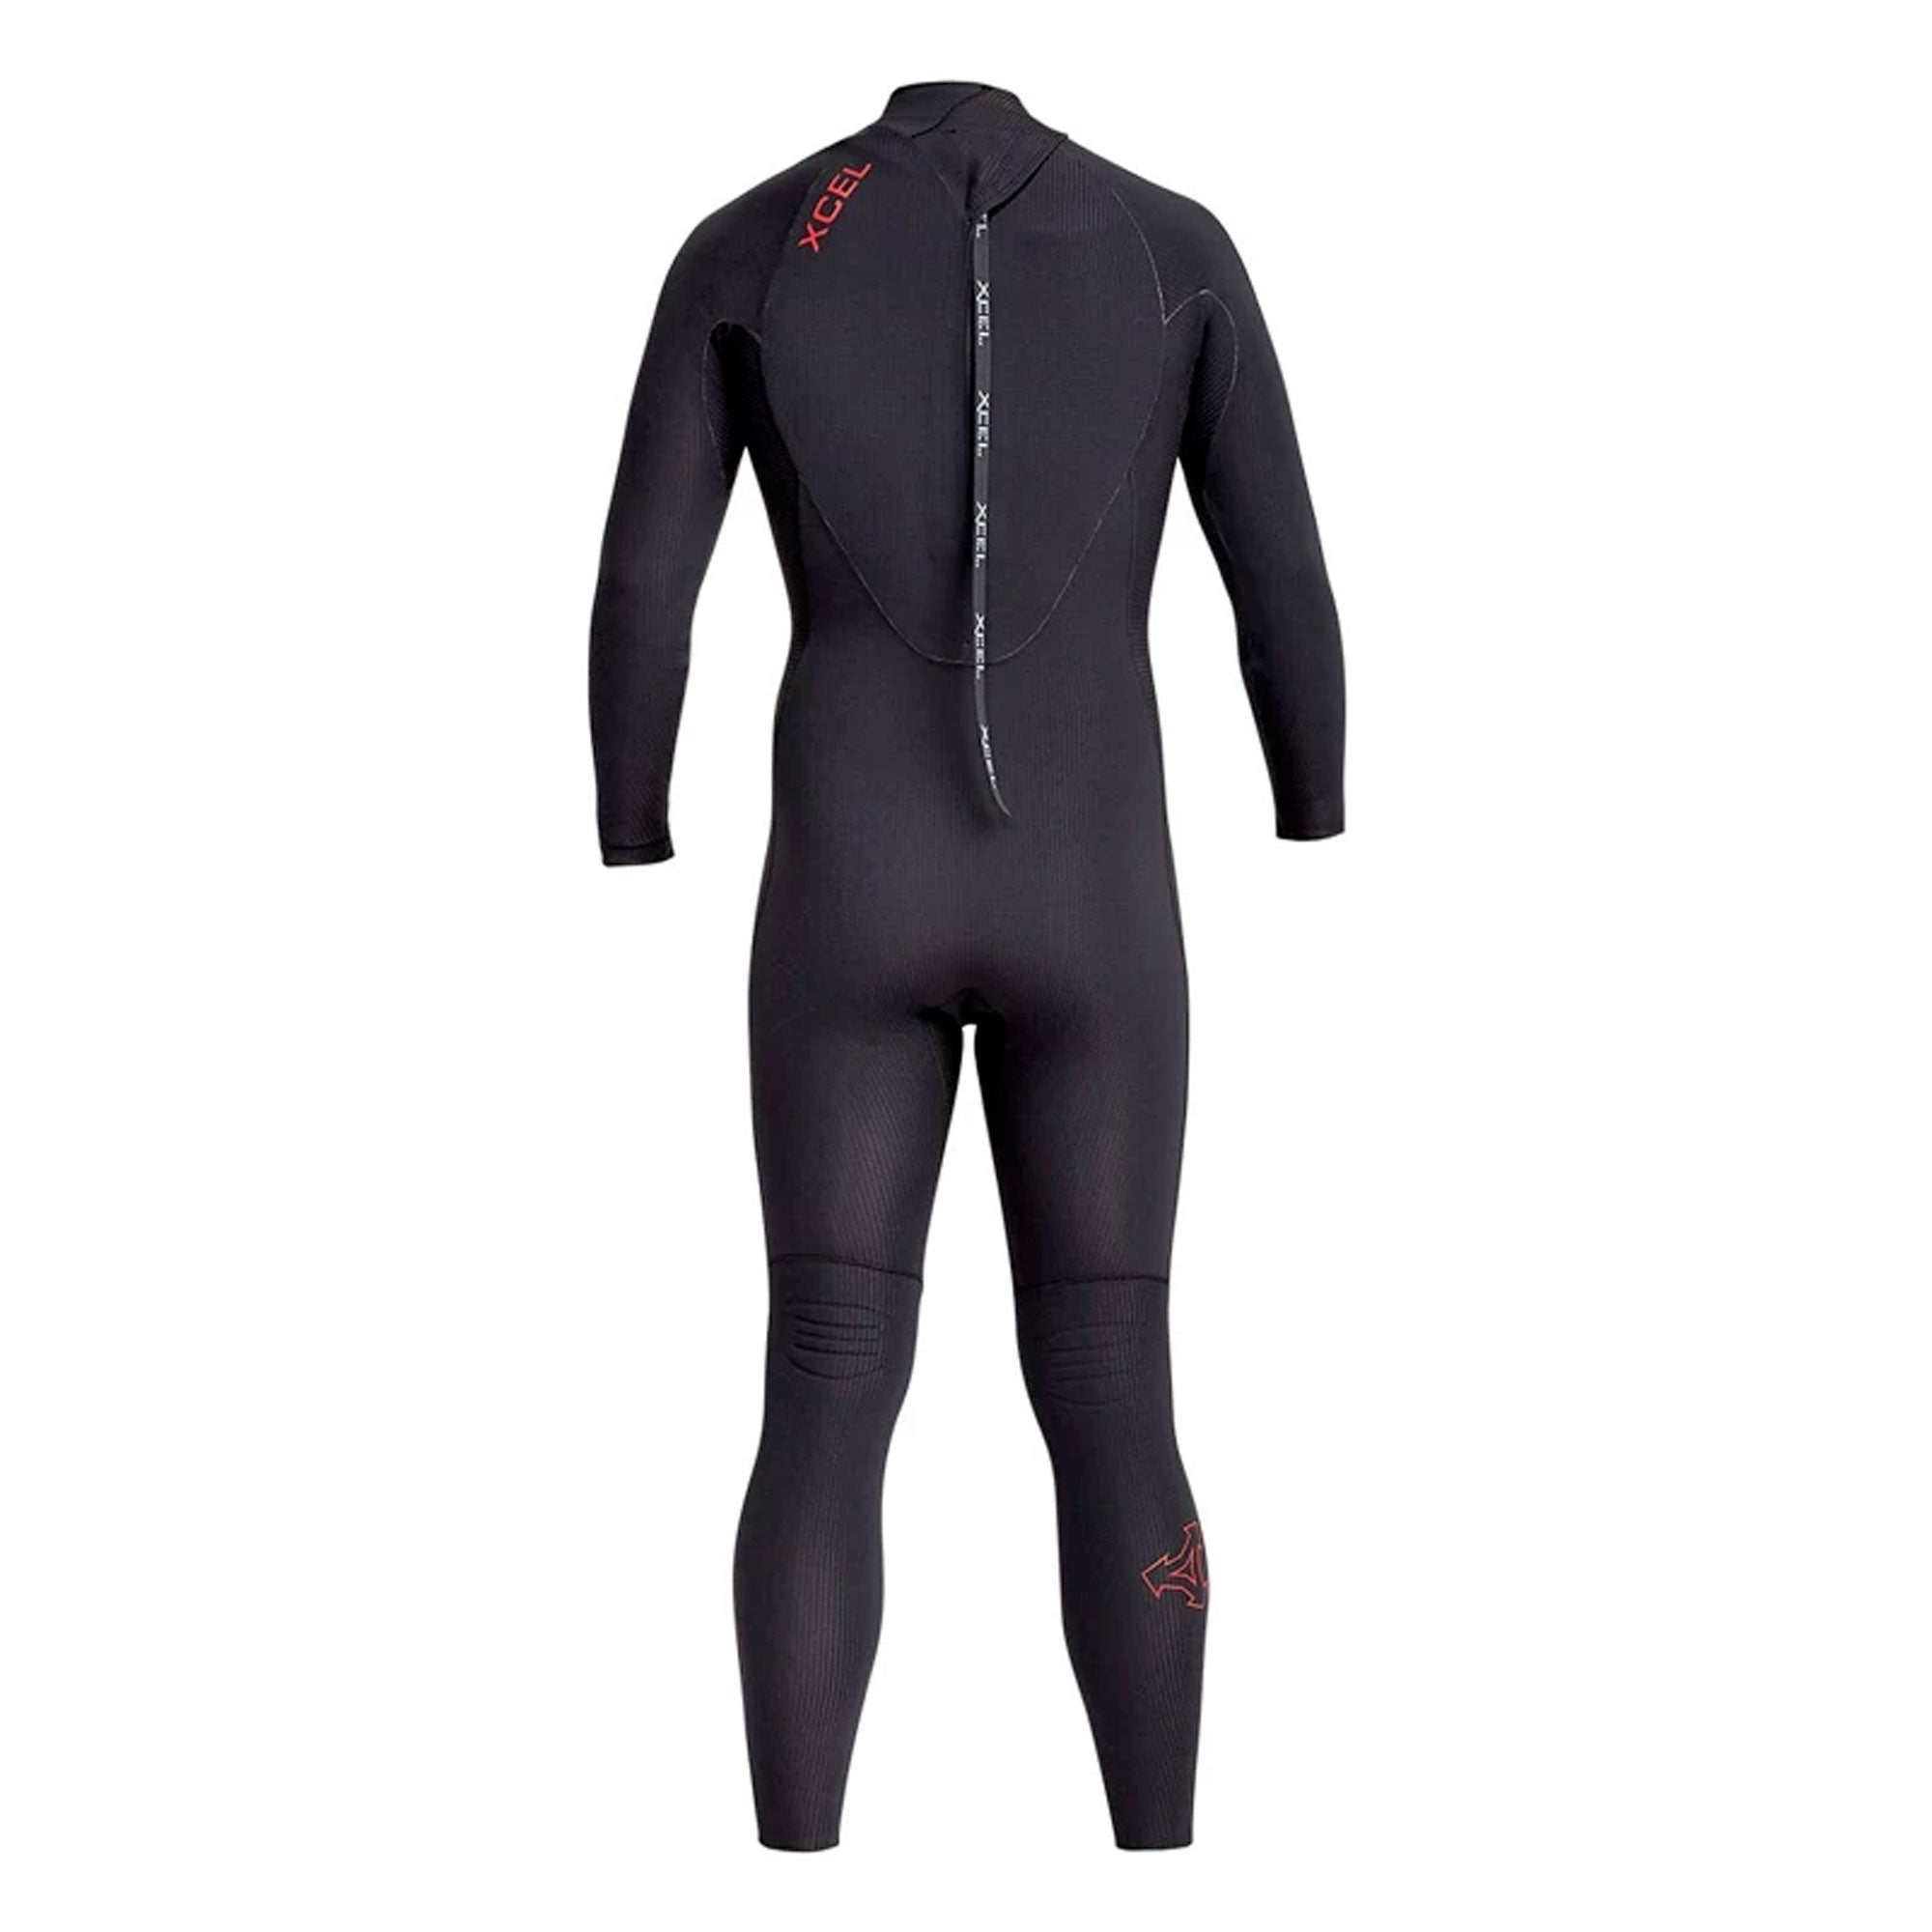 Xcel 3/2 Infiniti LTD  Men's Back Zip Full Wetsuit